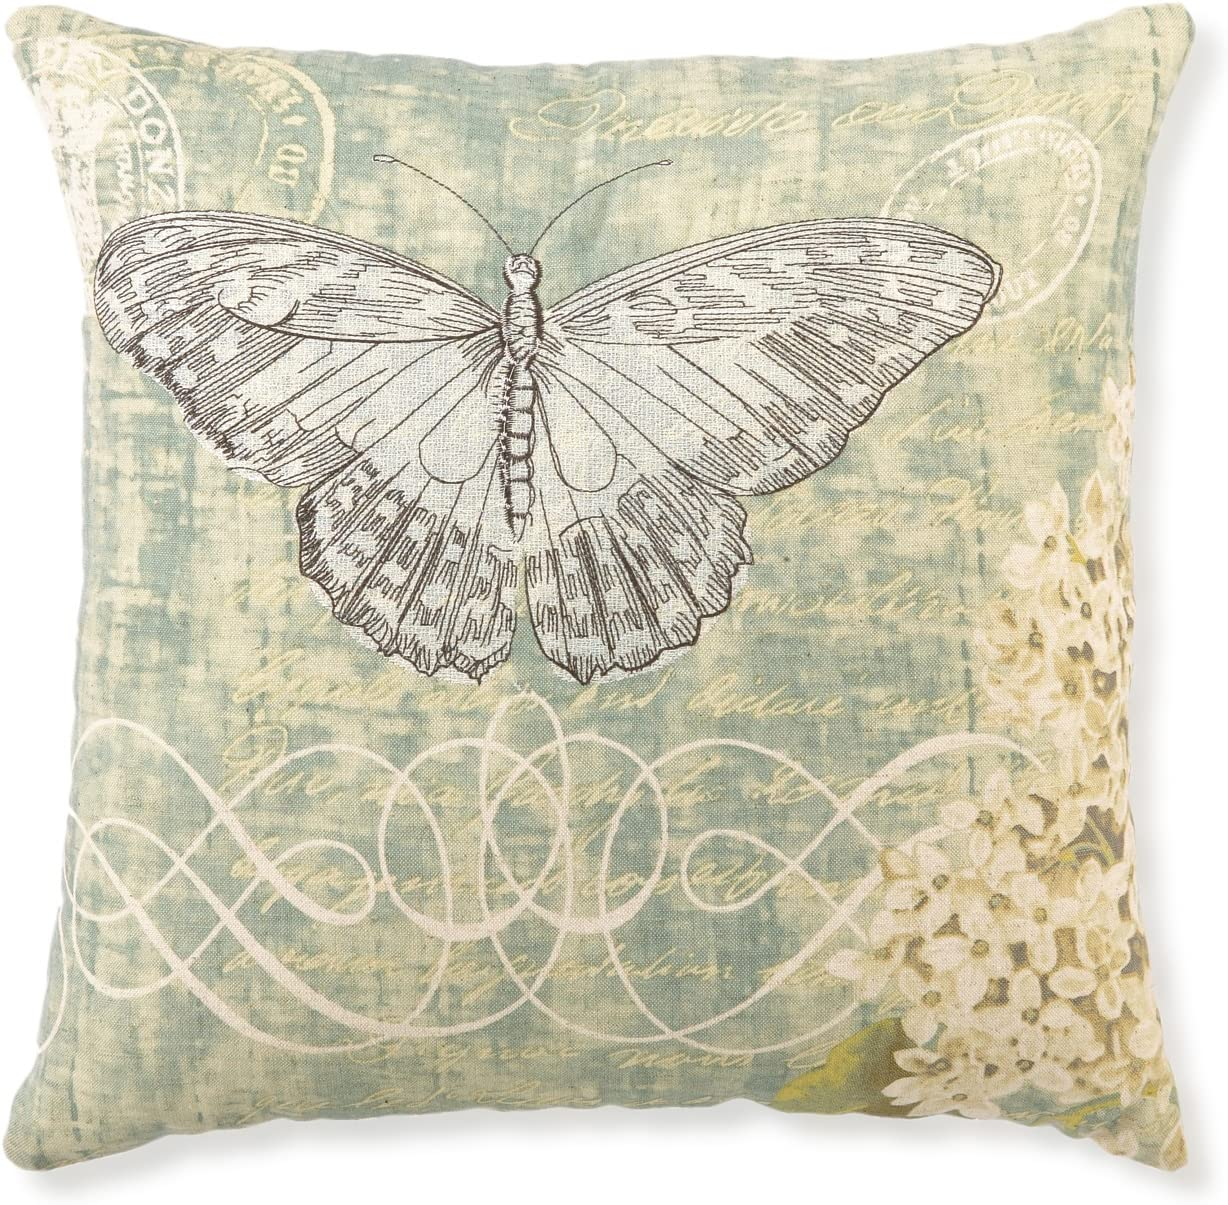 Kathryn White Deluxe Antique Butterfly Max 70% OFF Lilac Pillow x 16